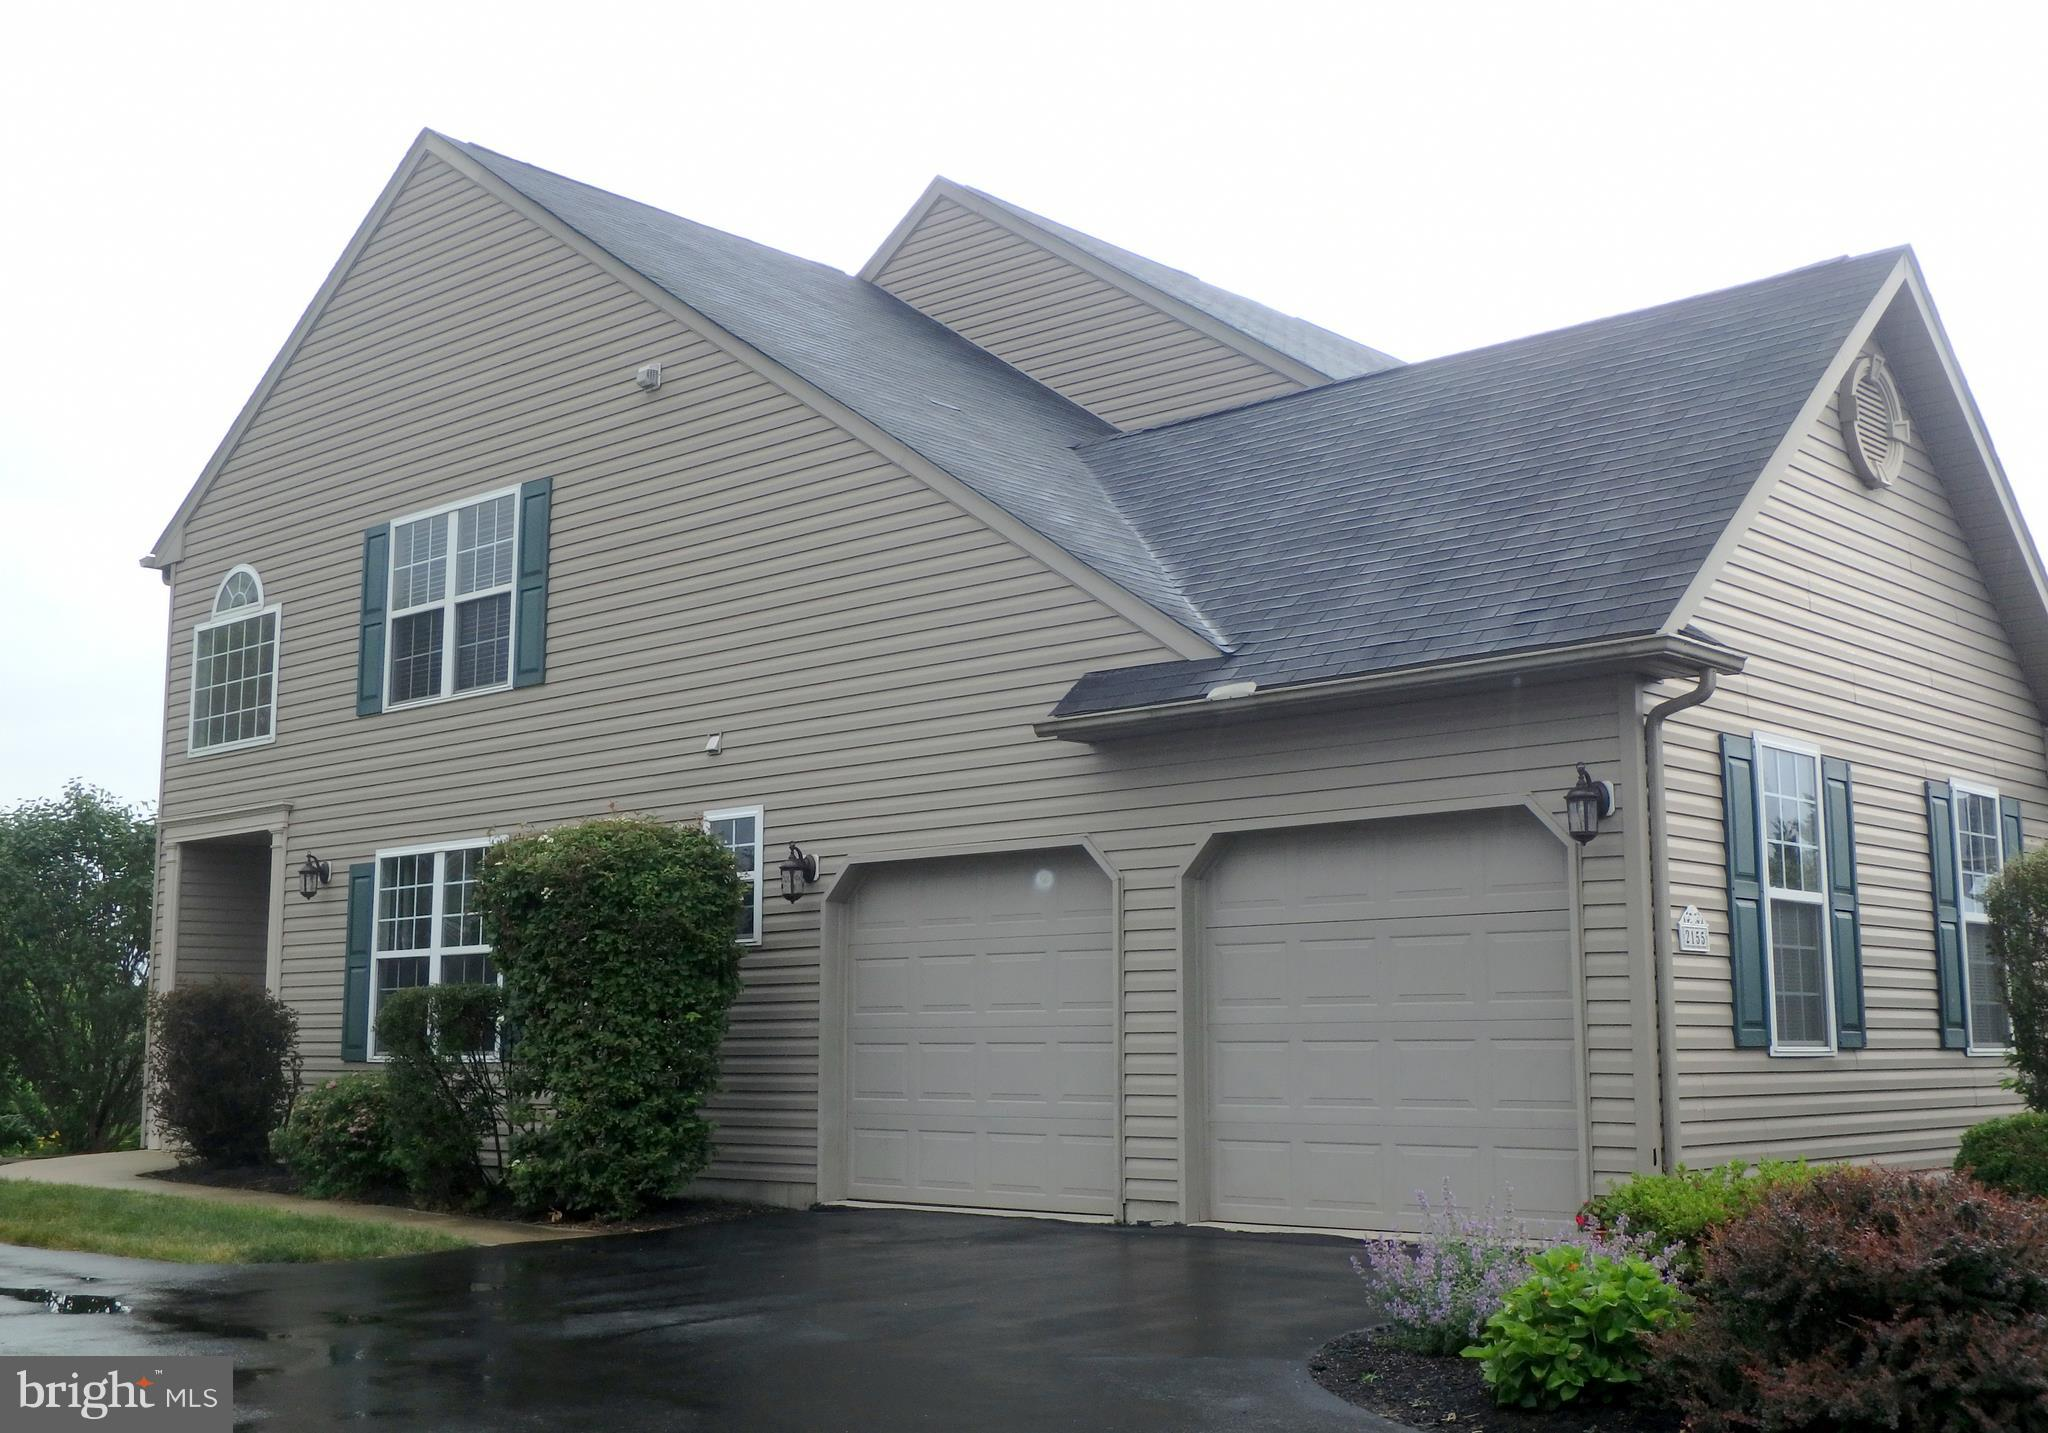 2155 ROLLING MEADOW DRIVE, MACUNGIE, PA 18062